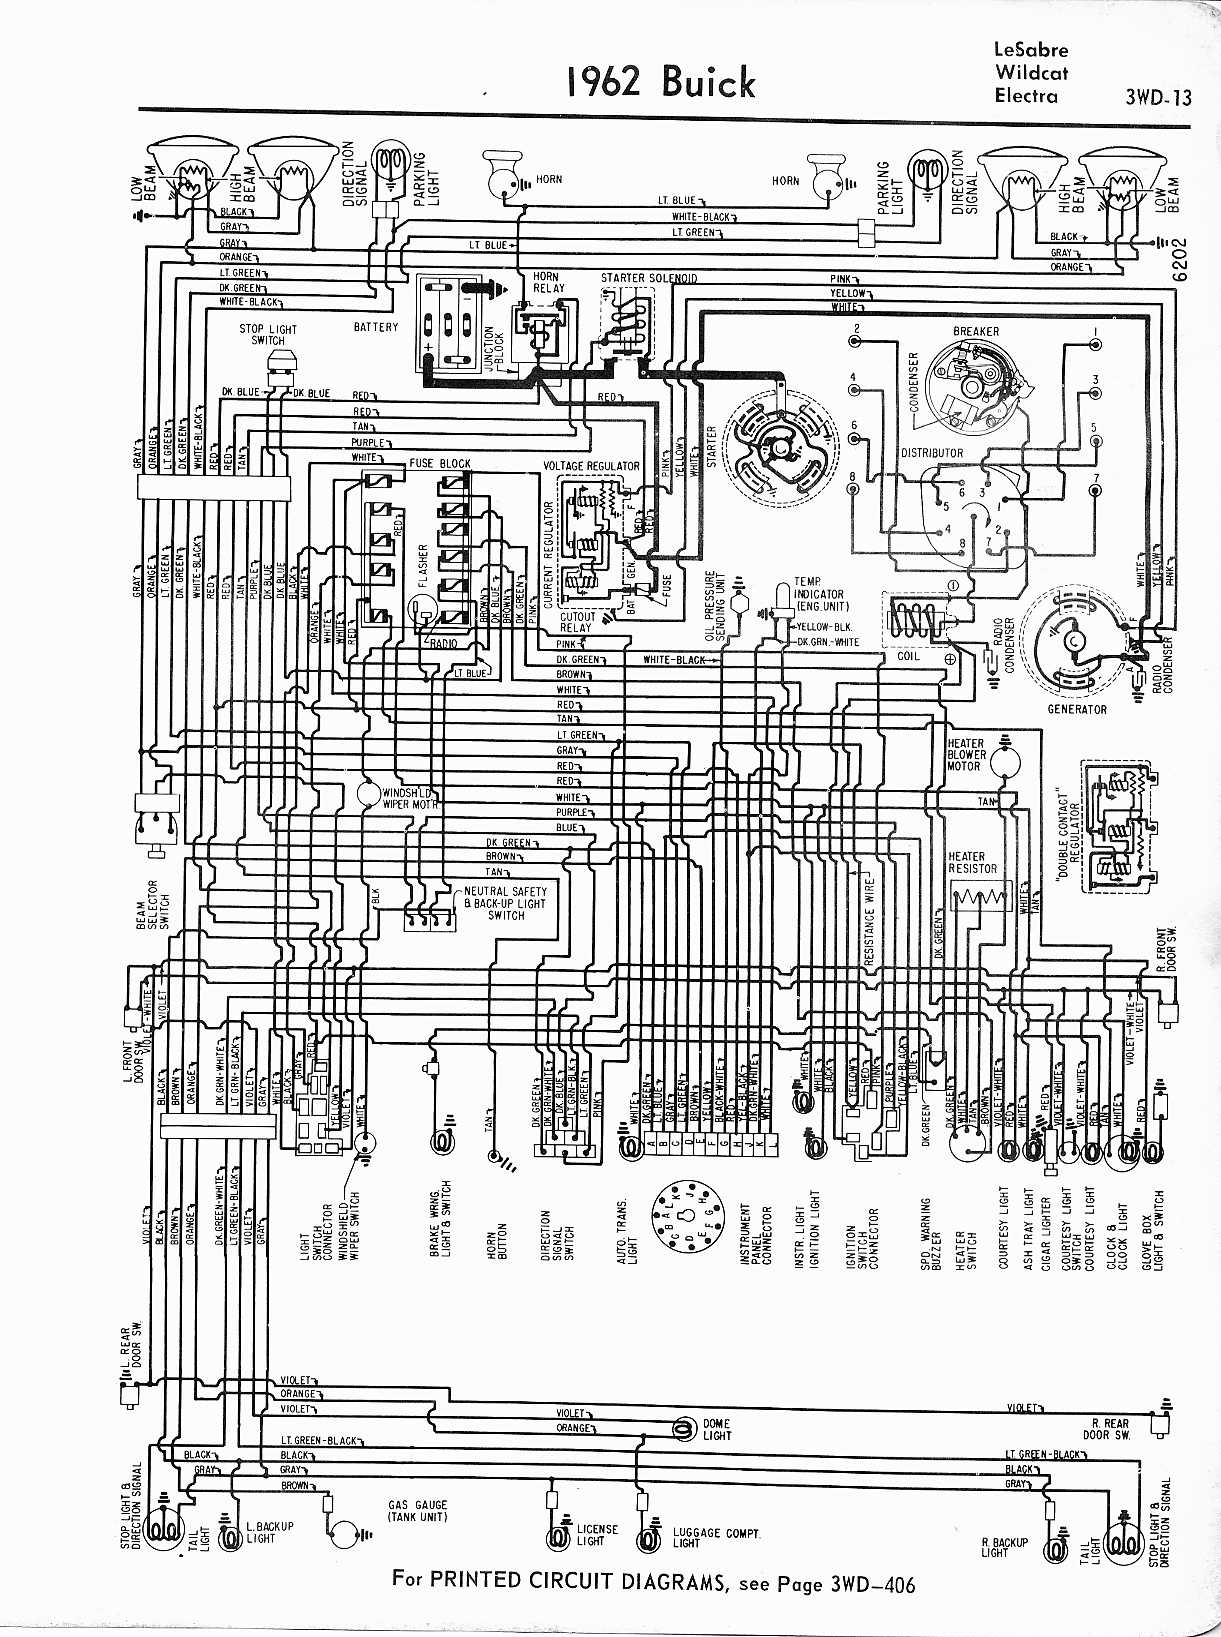 1984 dodge d150 wiring diagram buick    wiring    diagrams 1957 1965  buick    wiring    diagrams 1957 1965